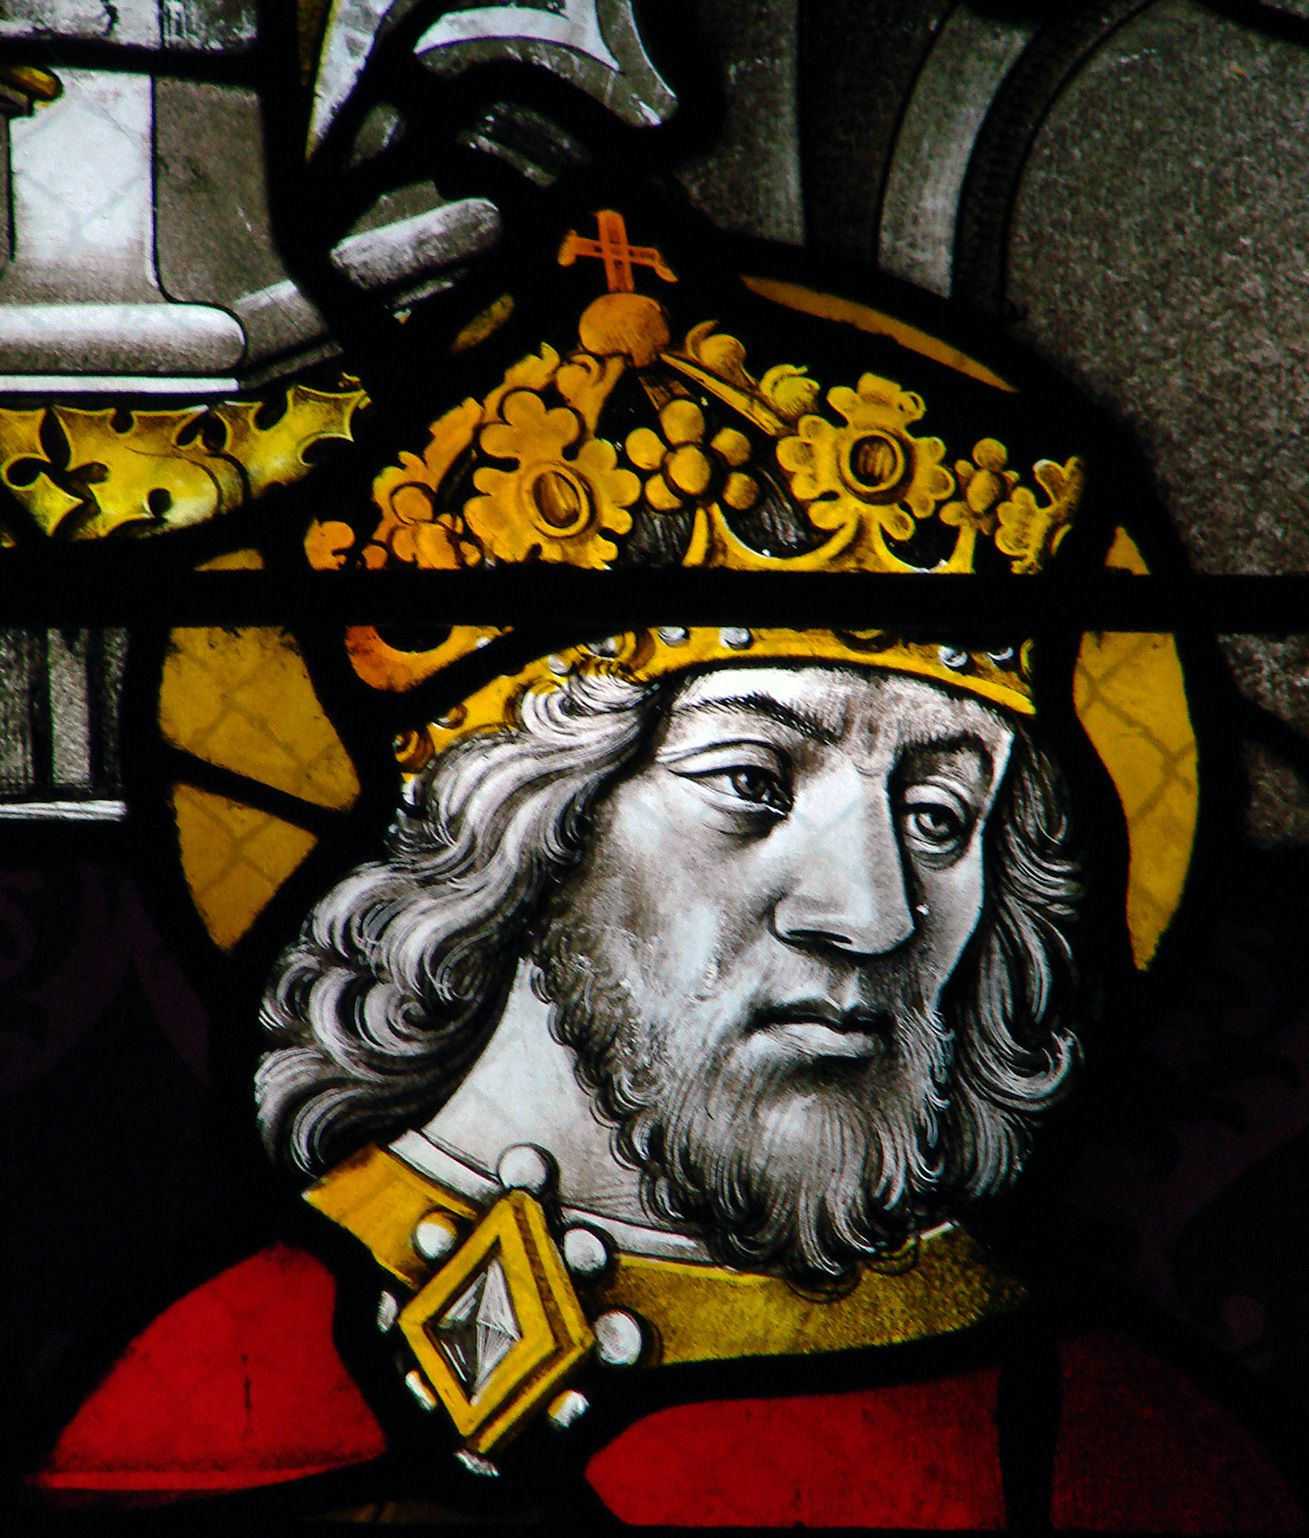 the life and reign of charlemagne a king of the franks the lombards and a holy roman emperor Charlemagne, or charles the great, was king of the franks between 768 and 814, and emperor of the west between 800 and 814 he founded the holy roman empire, strengthened european economic and political life, and promoted the cultural revival known as the carolingian renaissance.